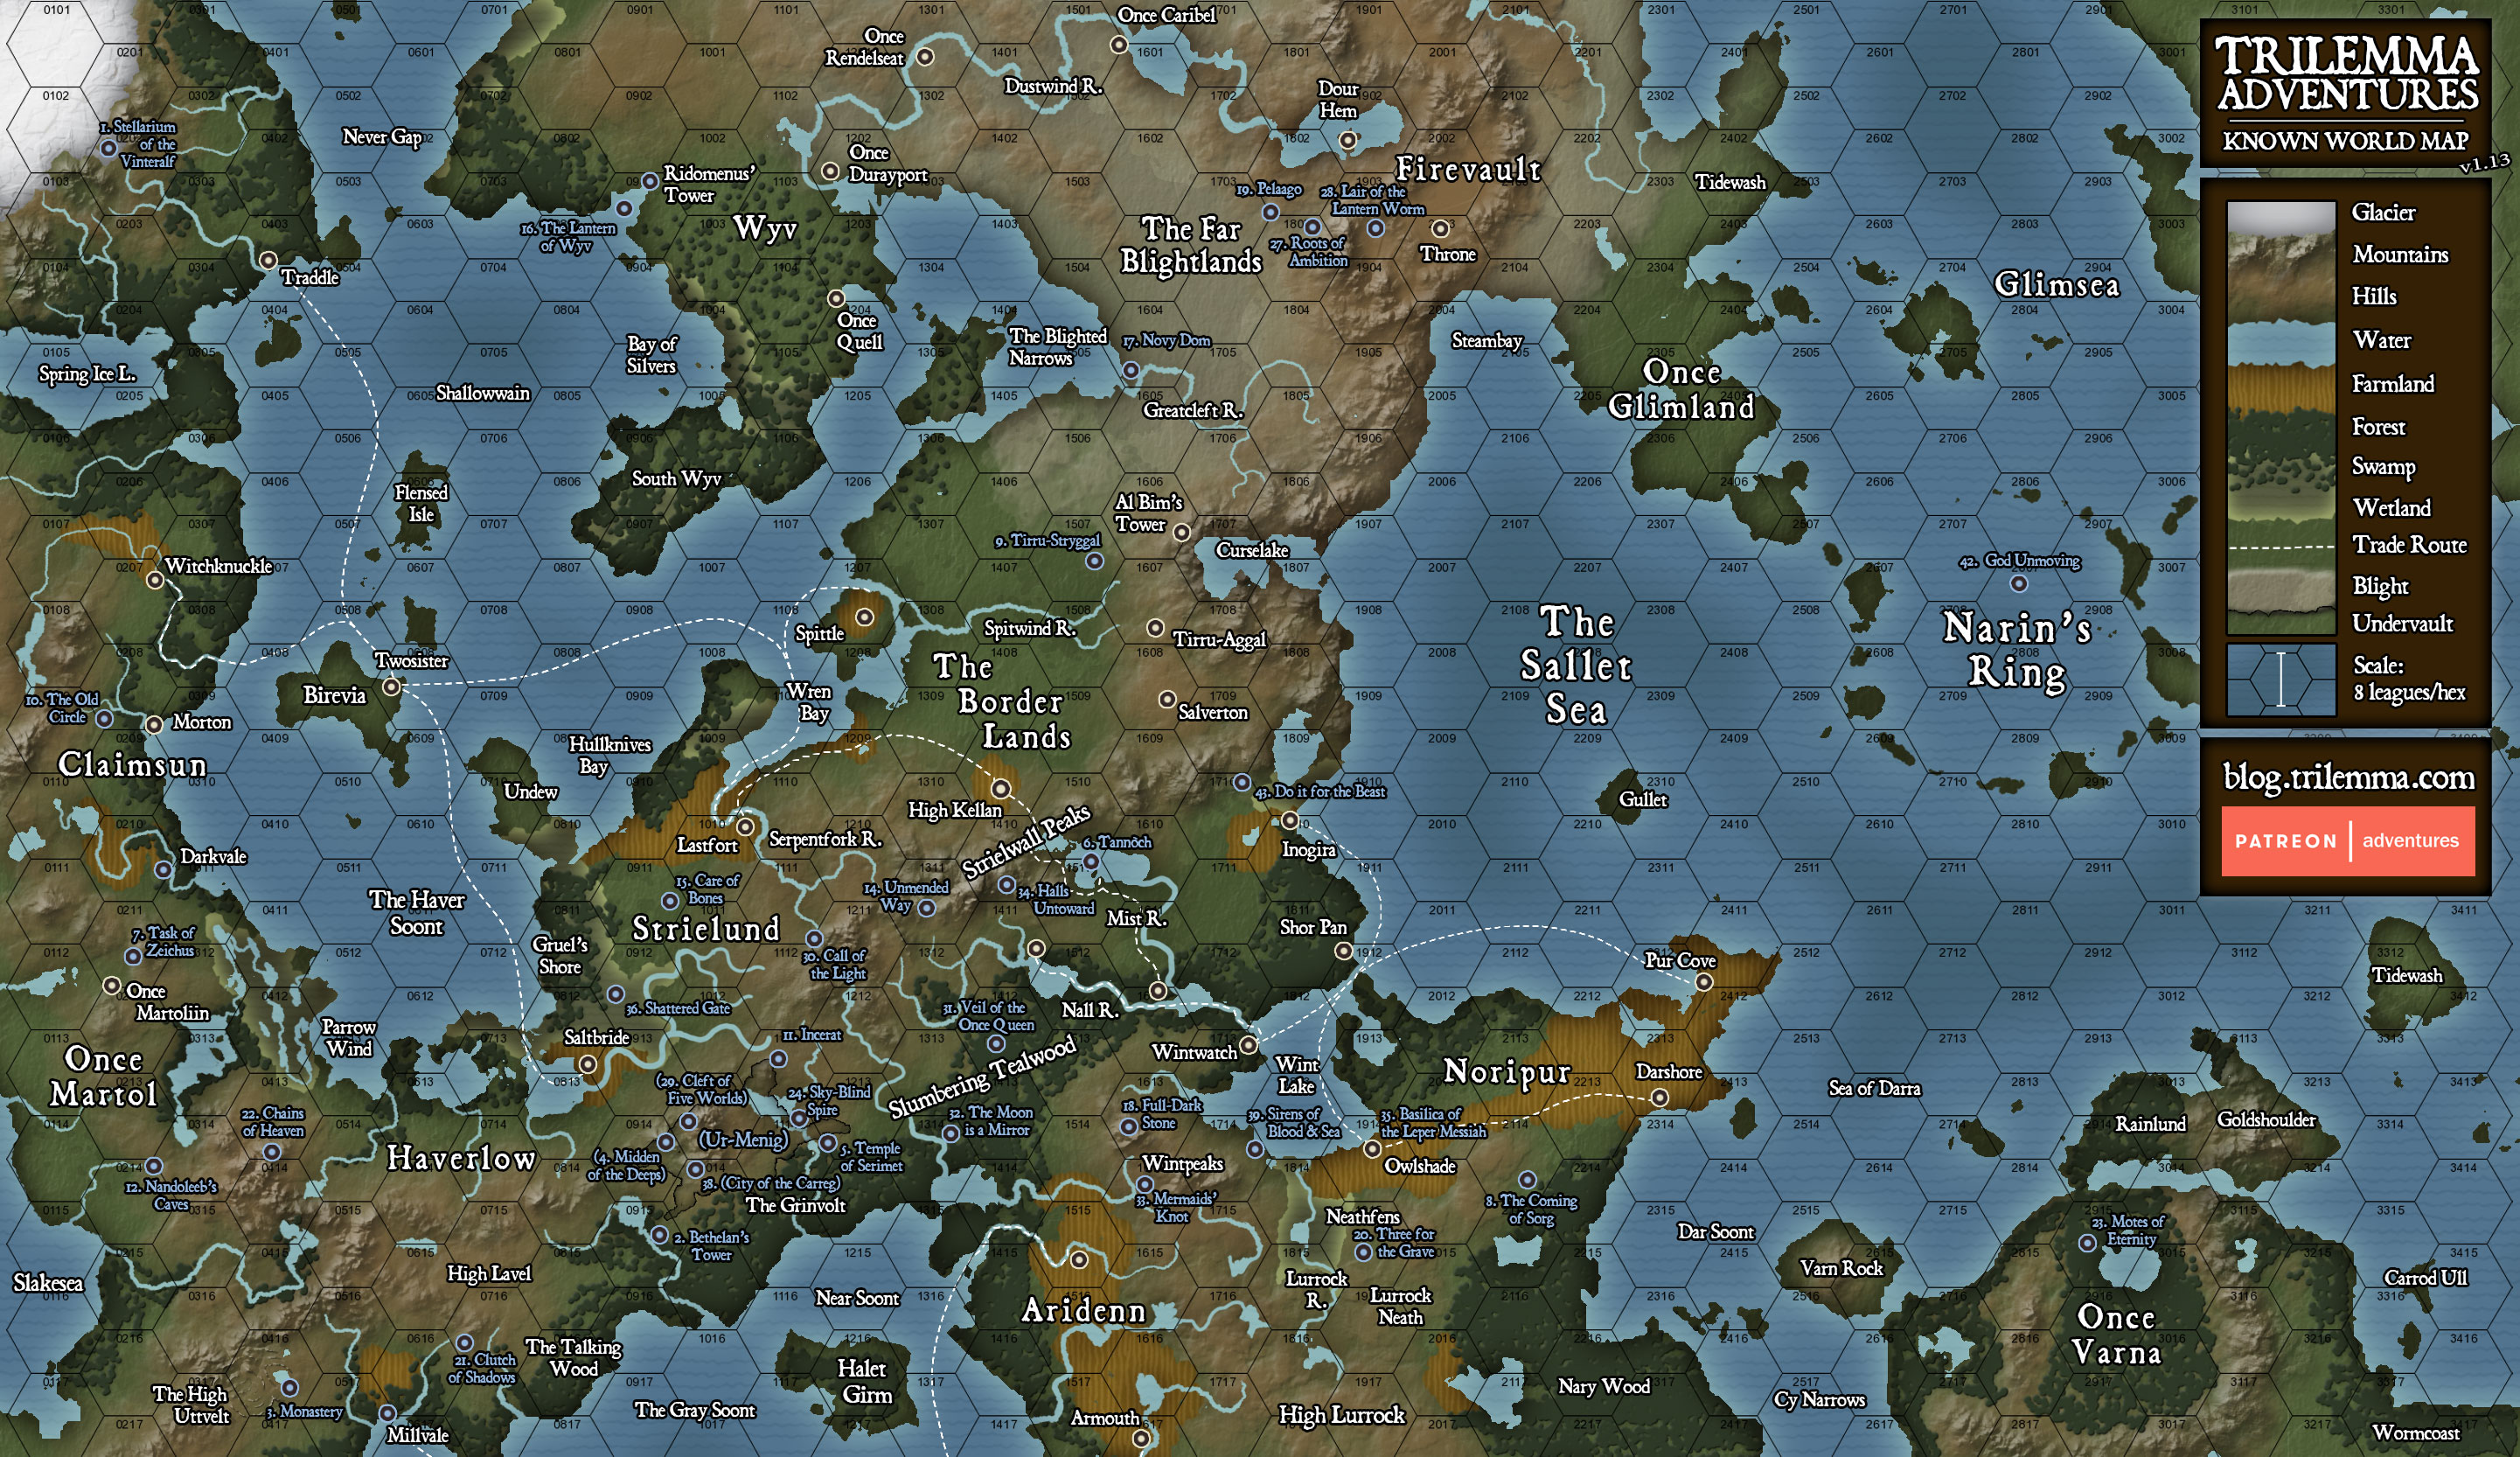 Most Detailed World Map.Trilemma Adventures Trilemma Adventures Known World Map